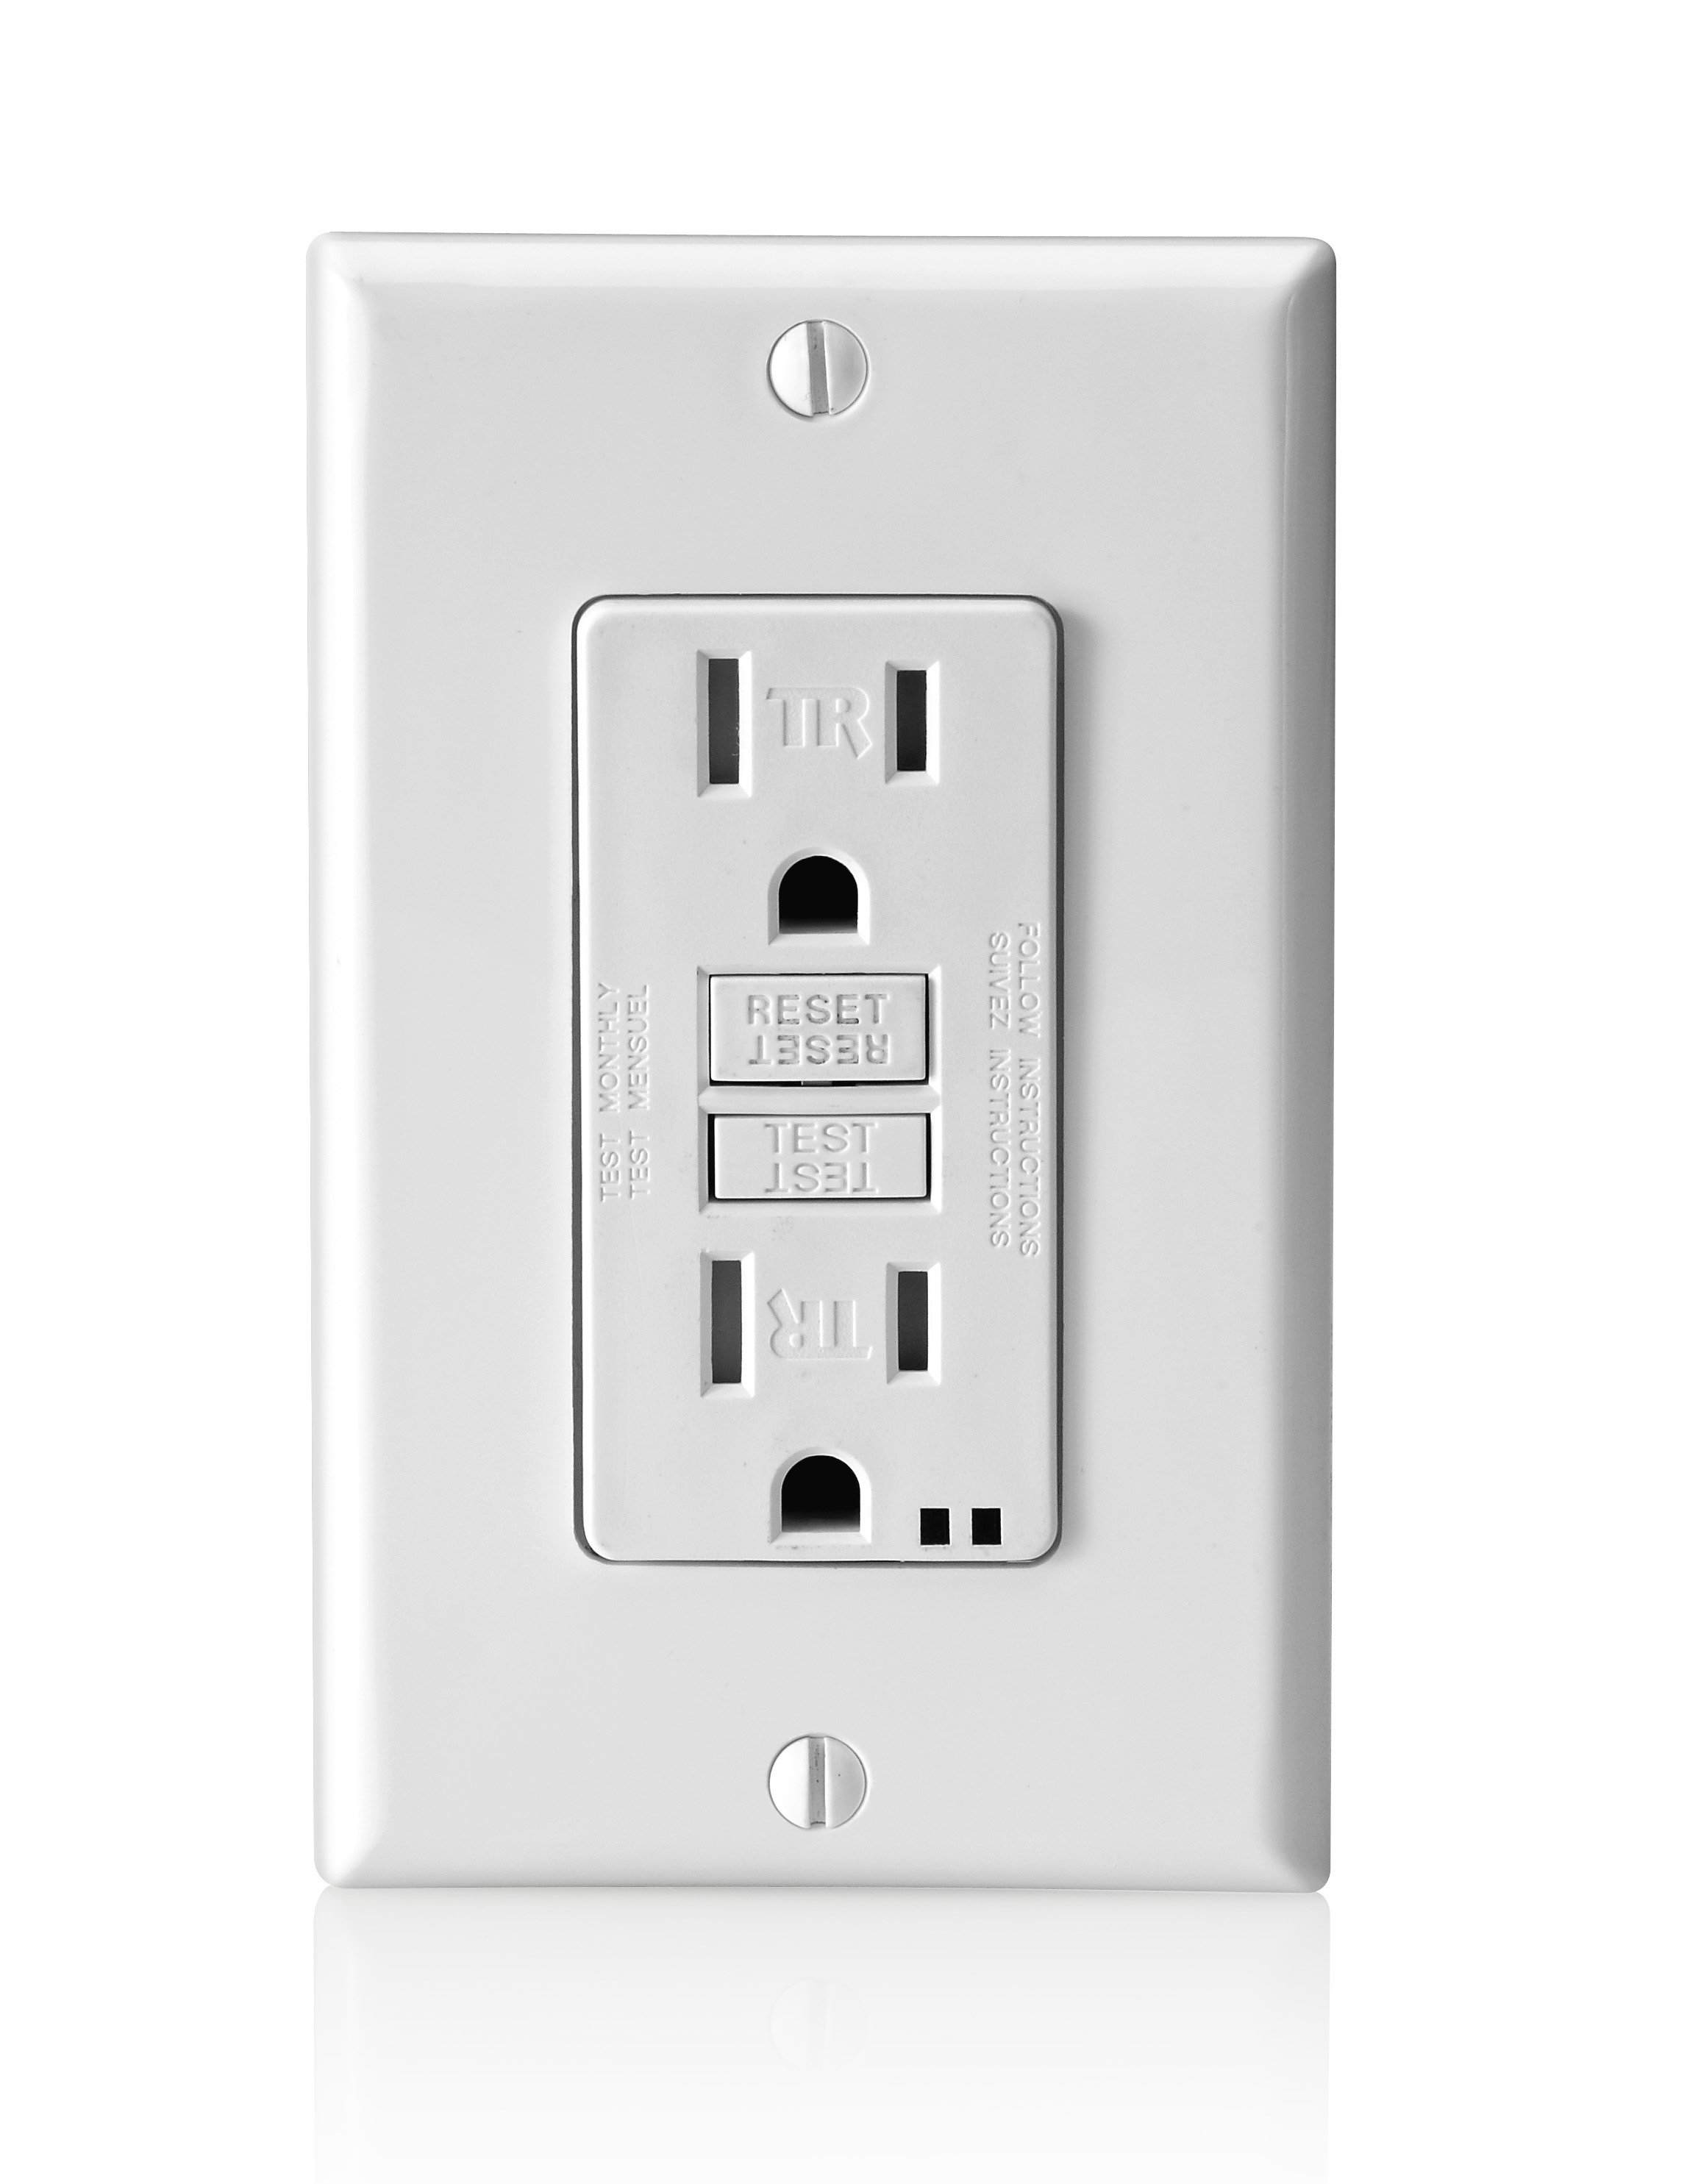 2) Reset all GFI outlets